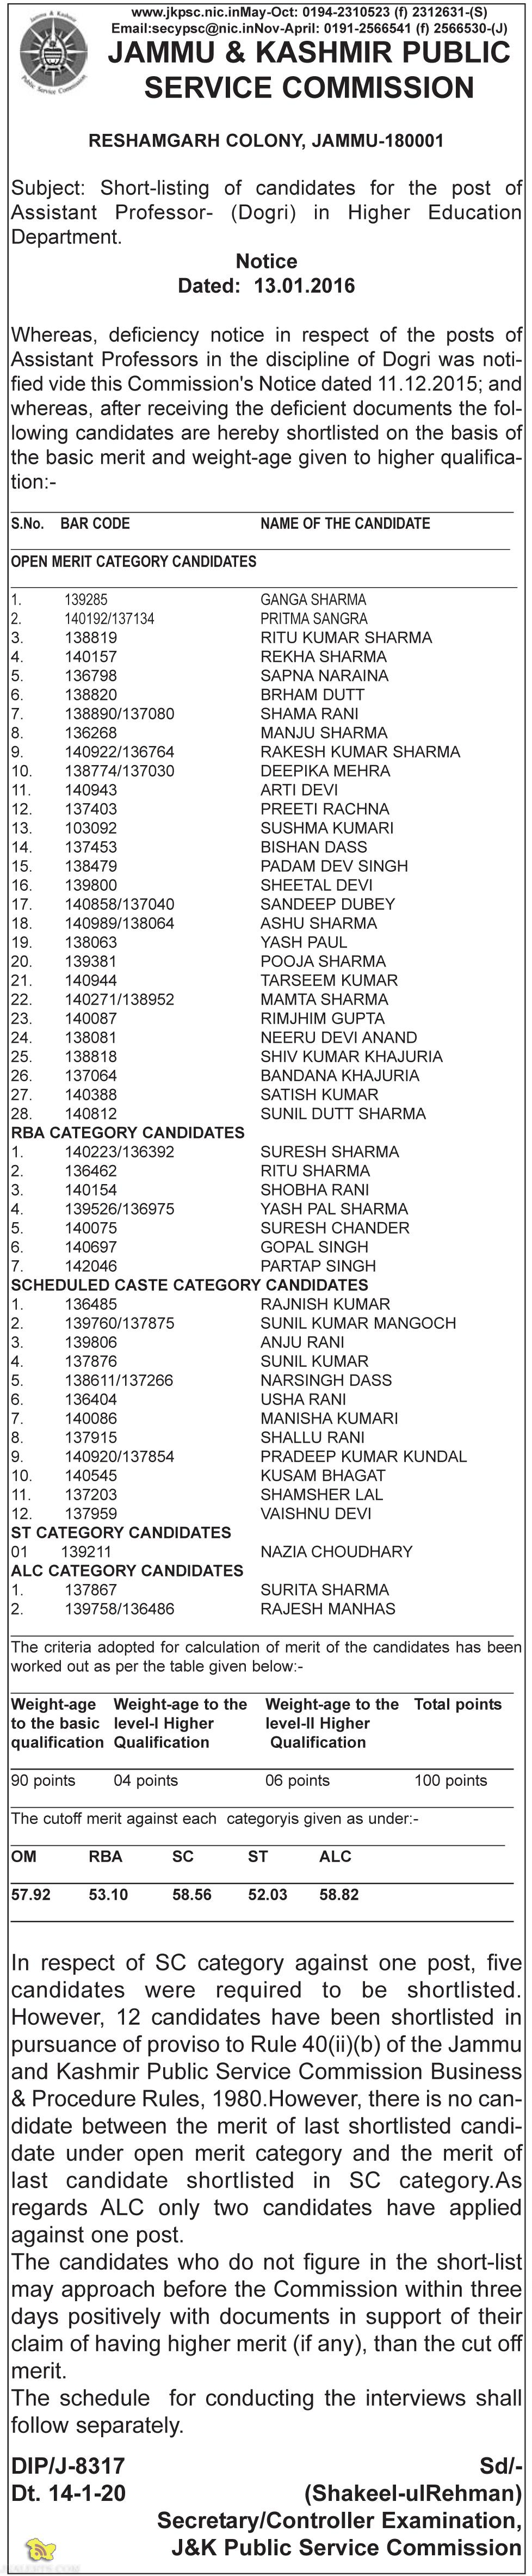 JKPSC Shortlisted candidates for Assistant Professor in Higher Education DepartmentJKPSC Shortlisted candidates for Assistant Professor in Higher Education Department